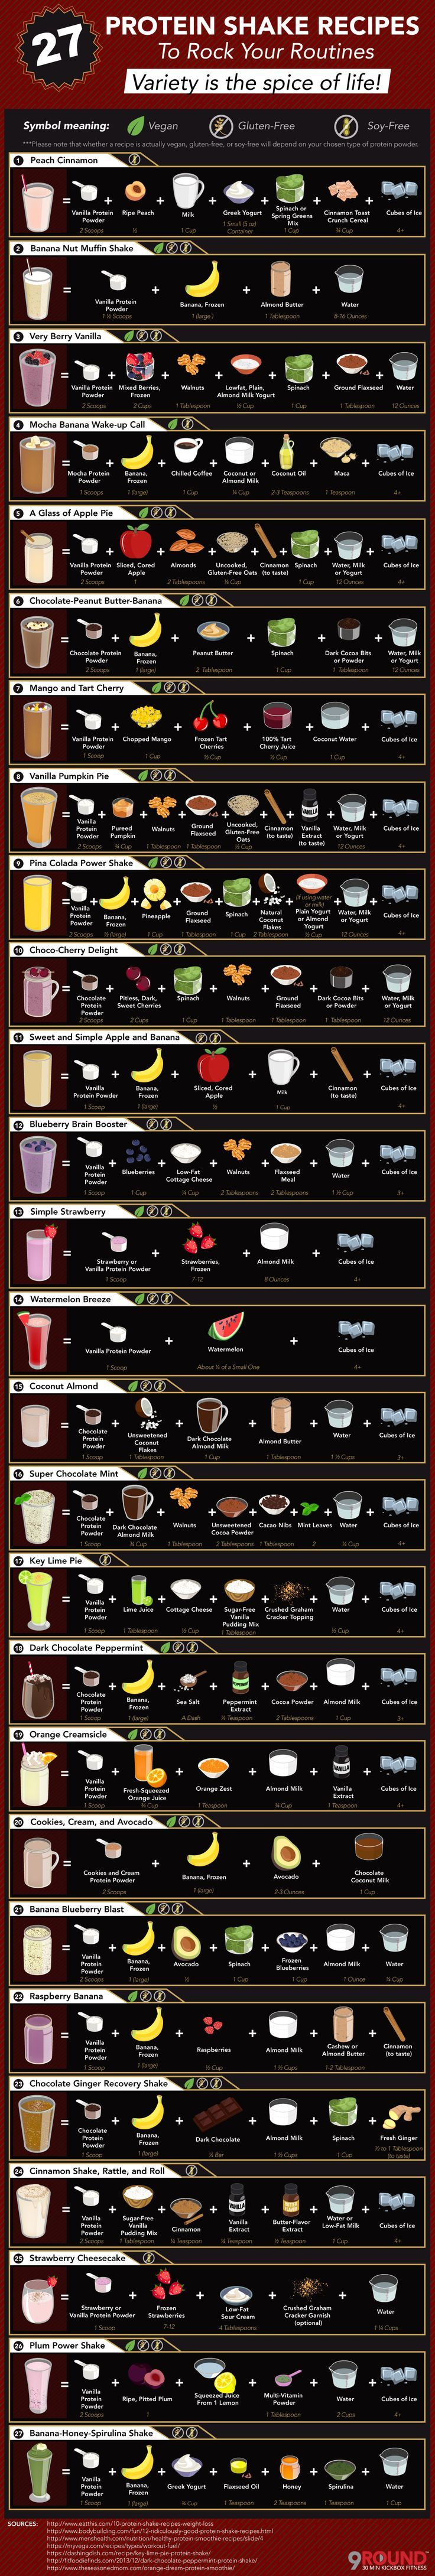 Protein Shake Recipes to Rock Your Routines | http://9round.com #Infographic #Protein_Shakes